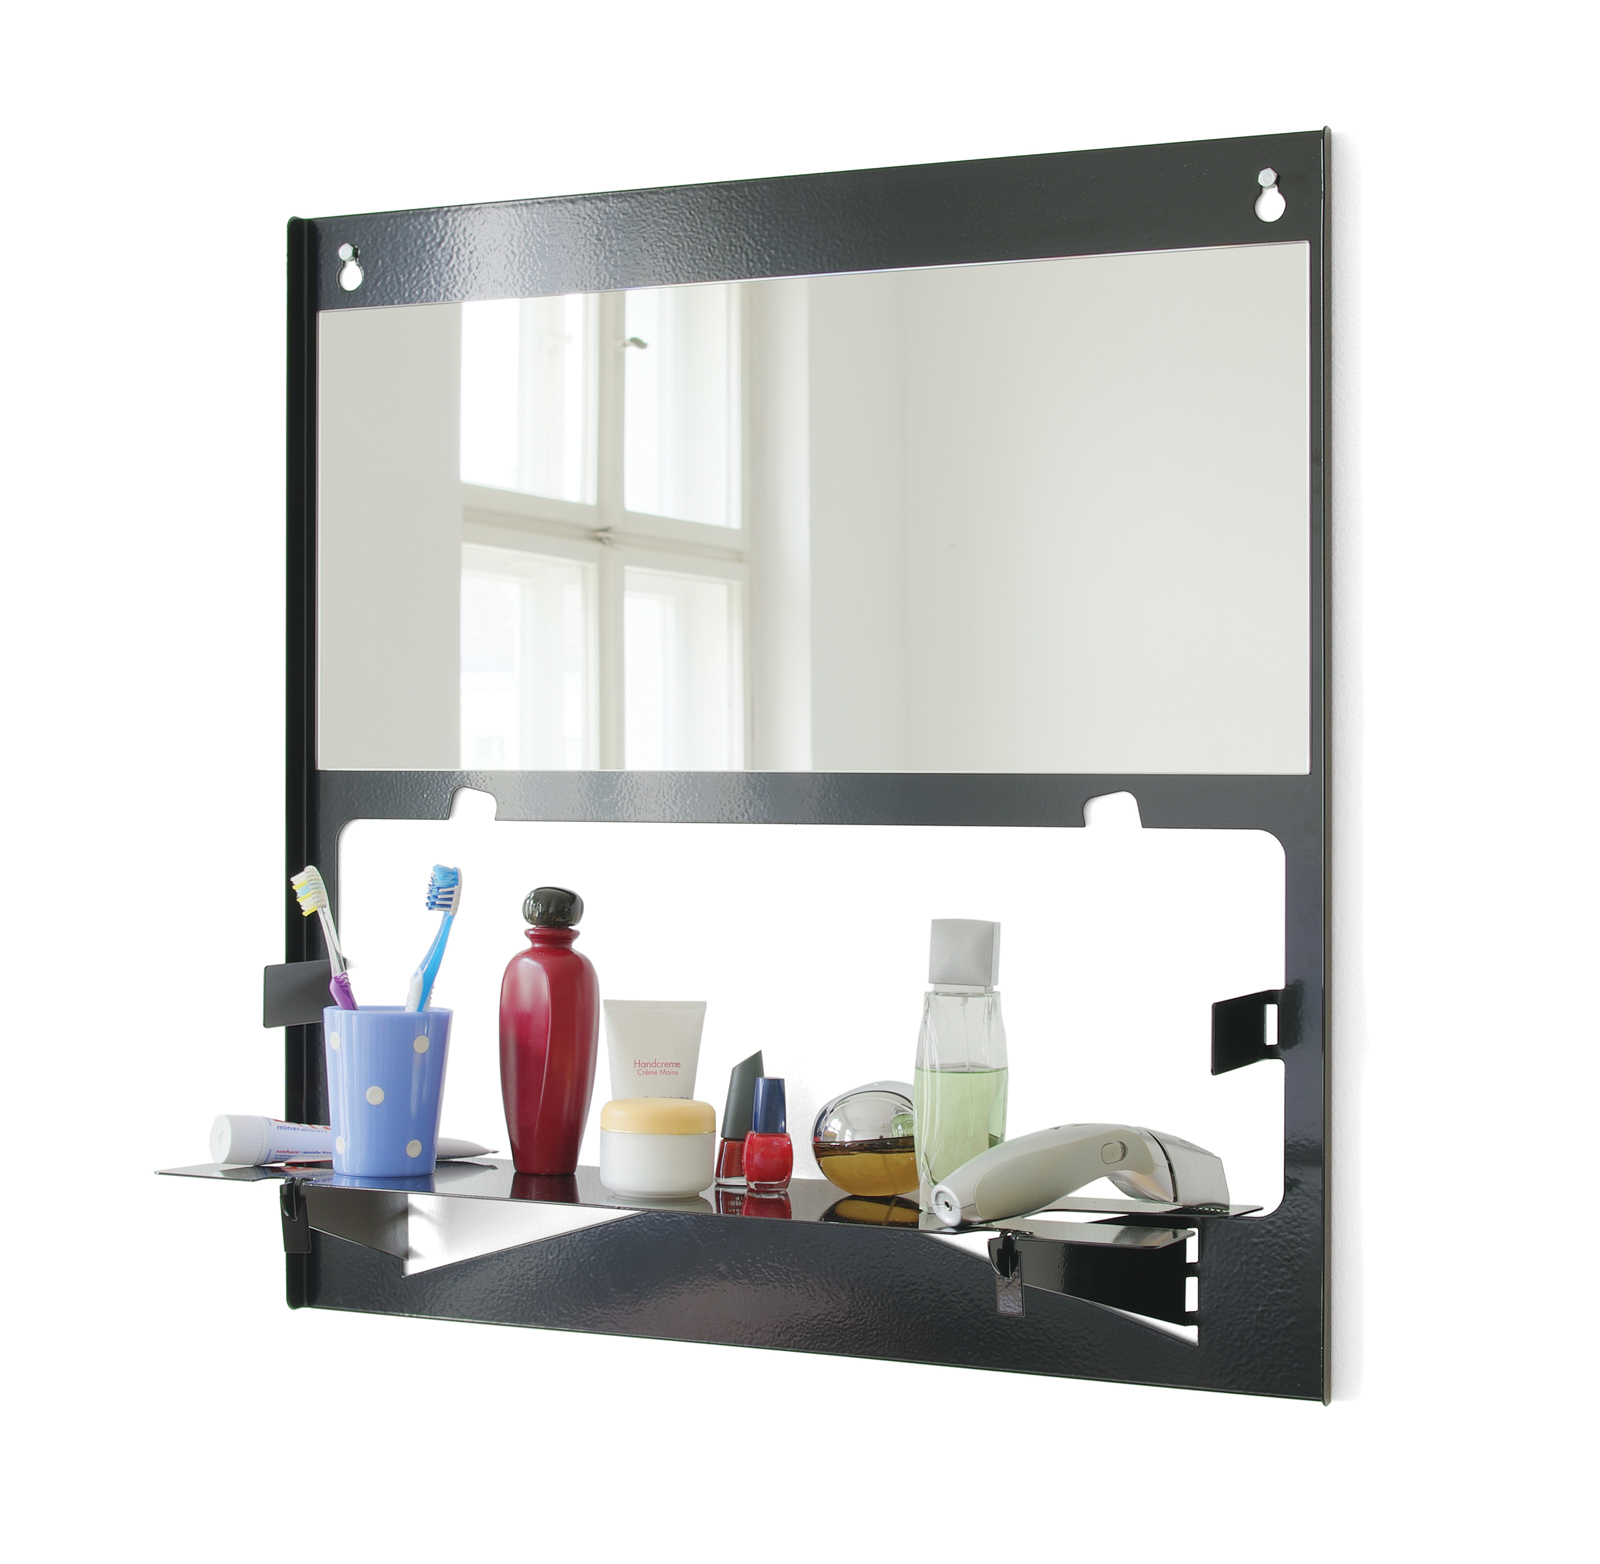 Piegato mirror by Matthias Ries for MRDO products